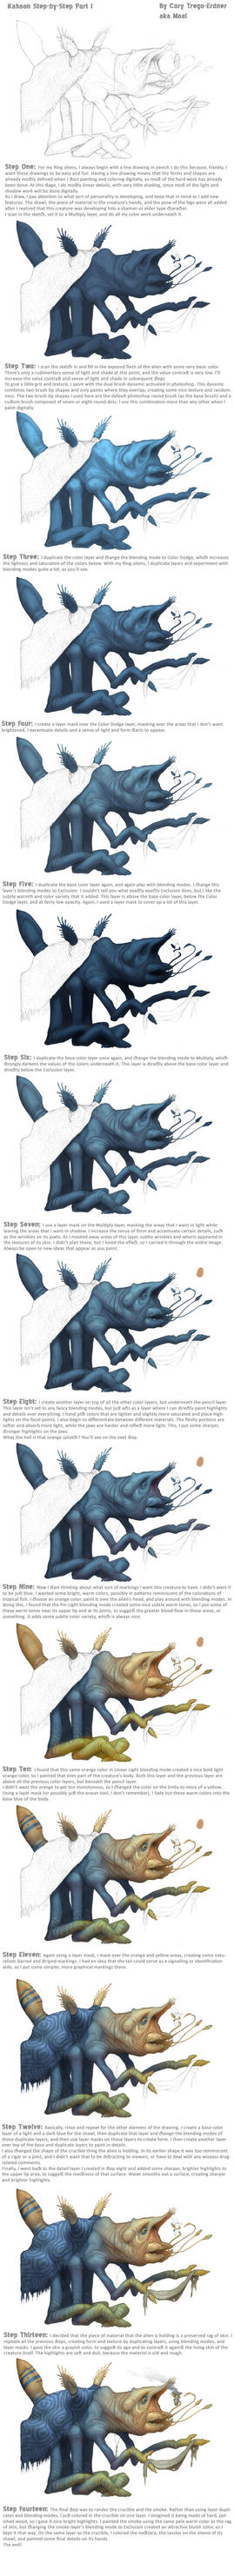 Kahoon Step-by-Step by M0AI